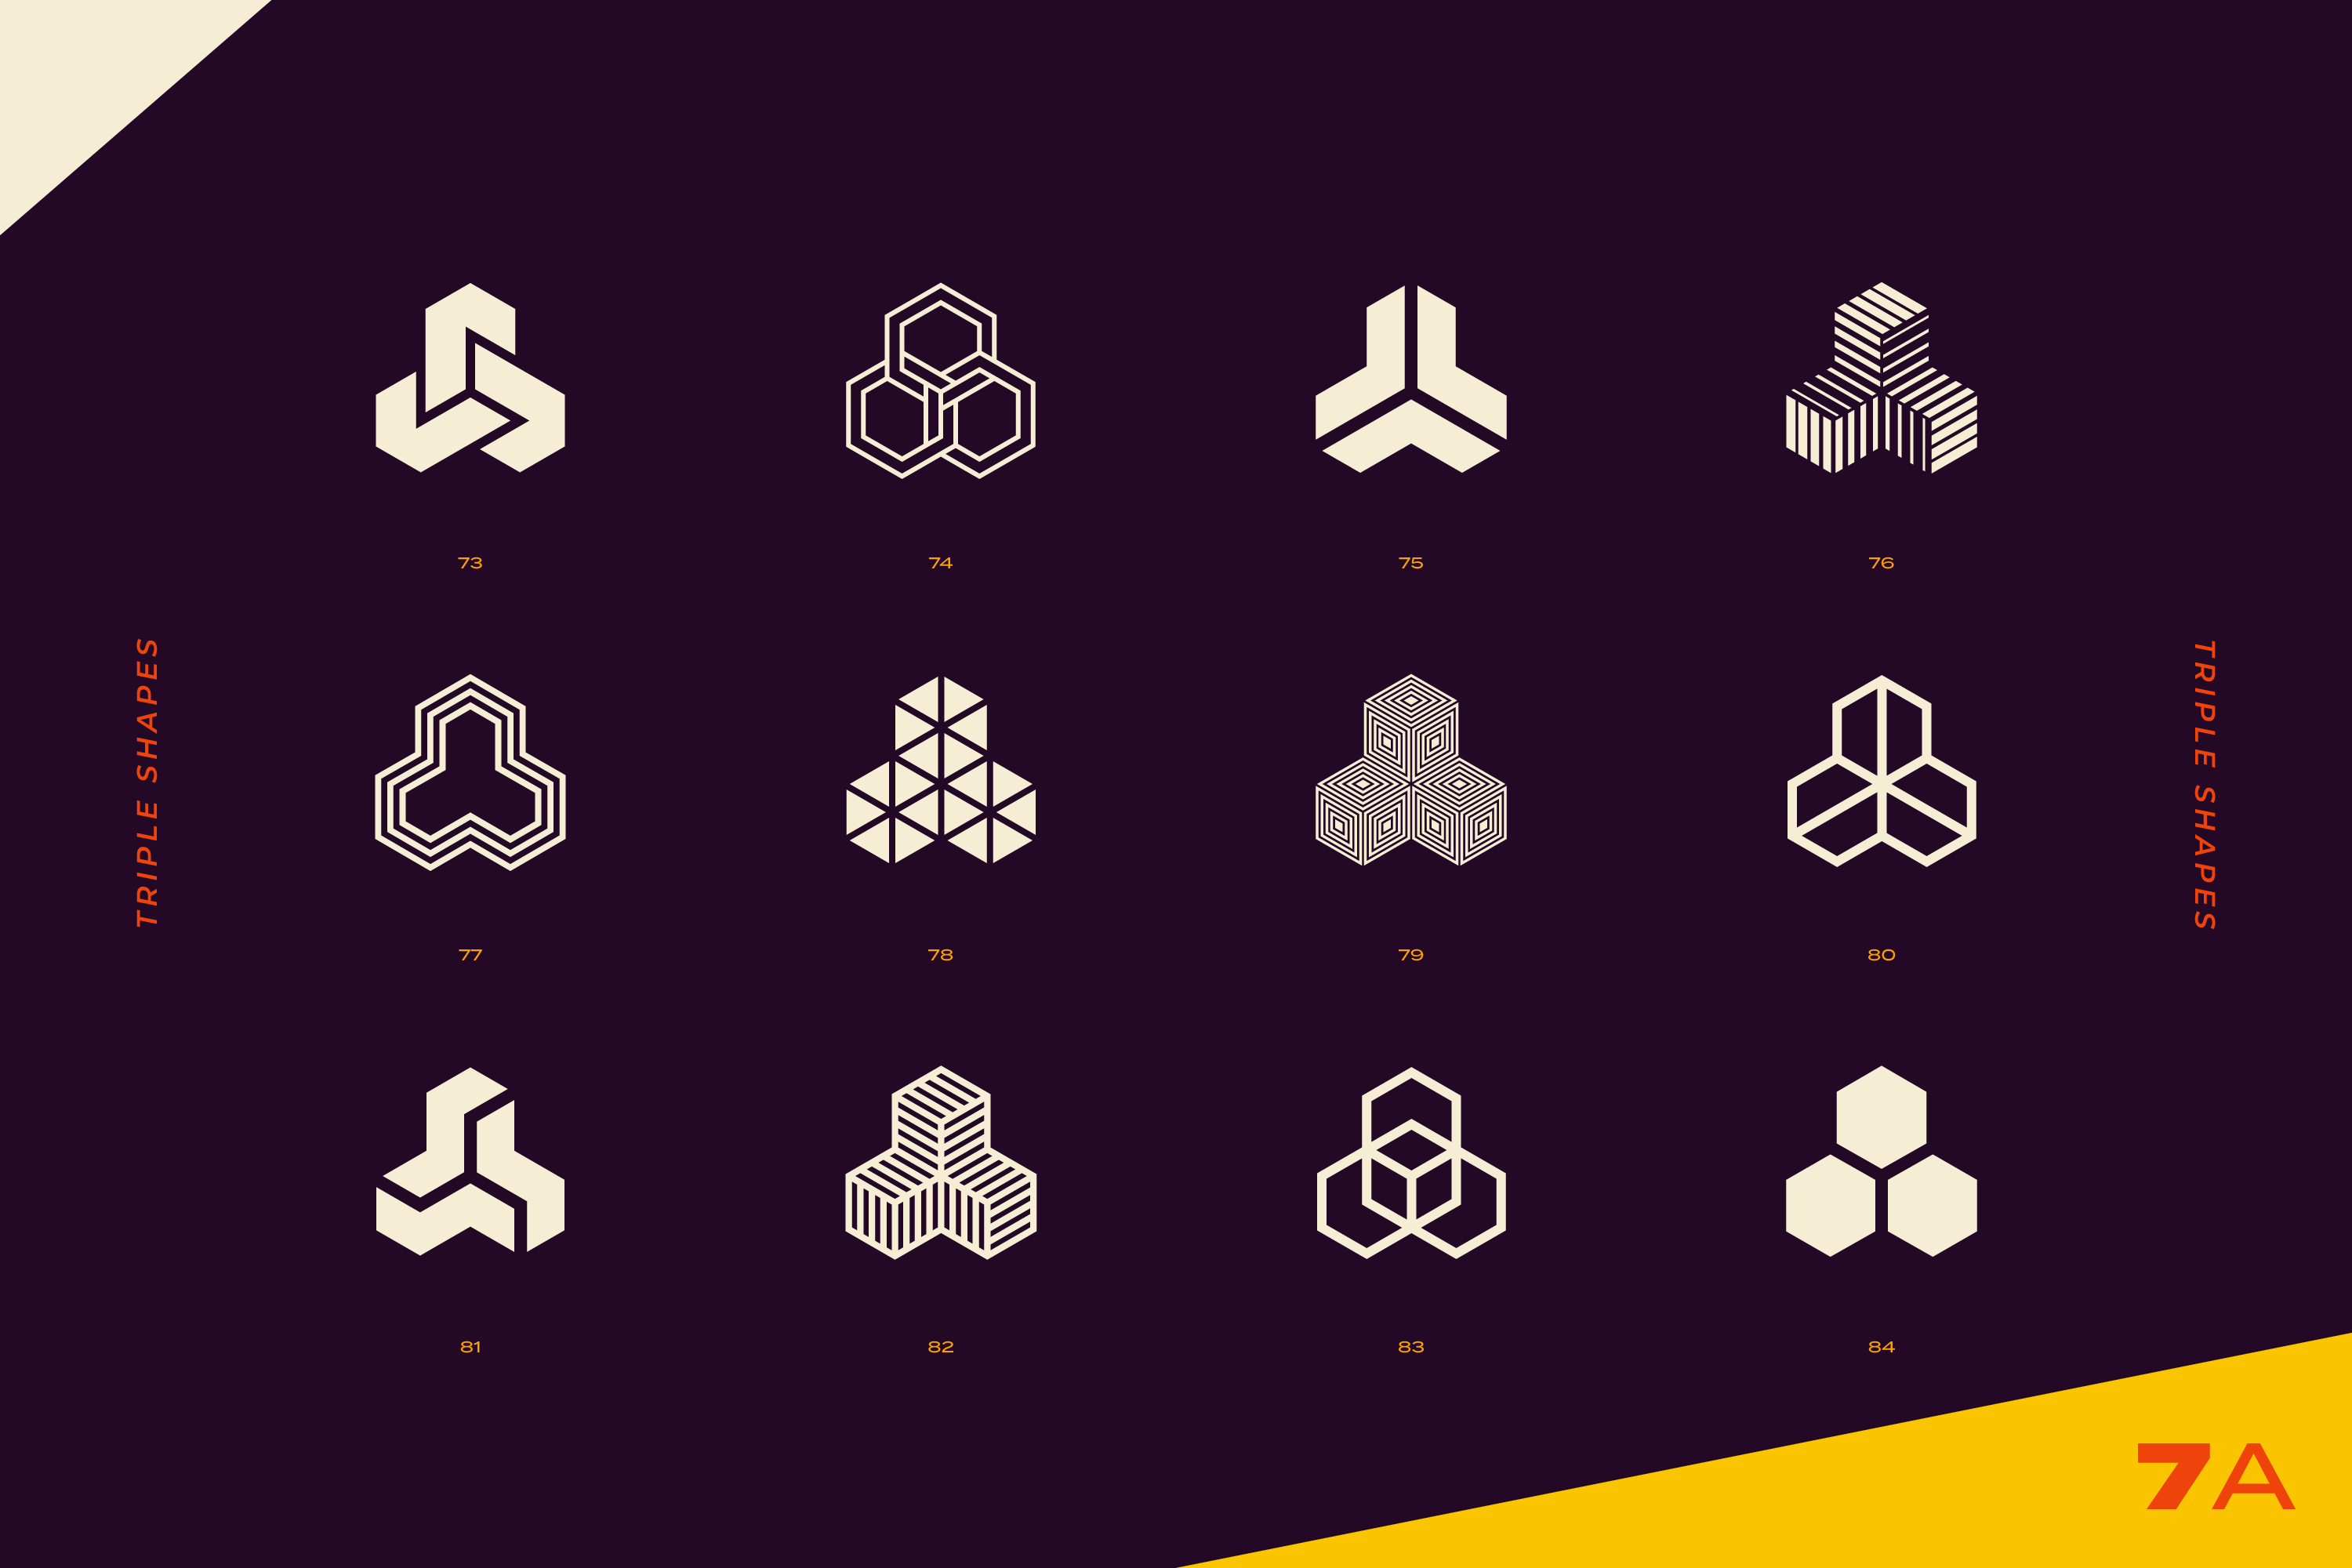 96 Abstract logo marks & geometric shapes collection example image 20